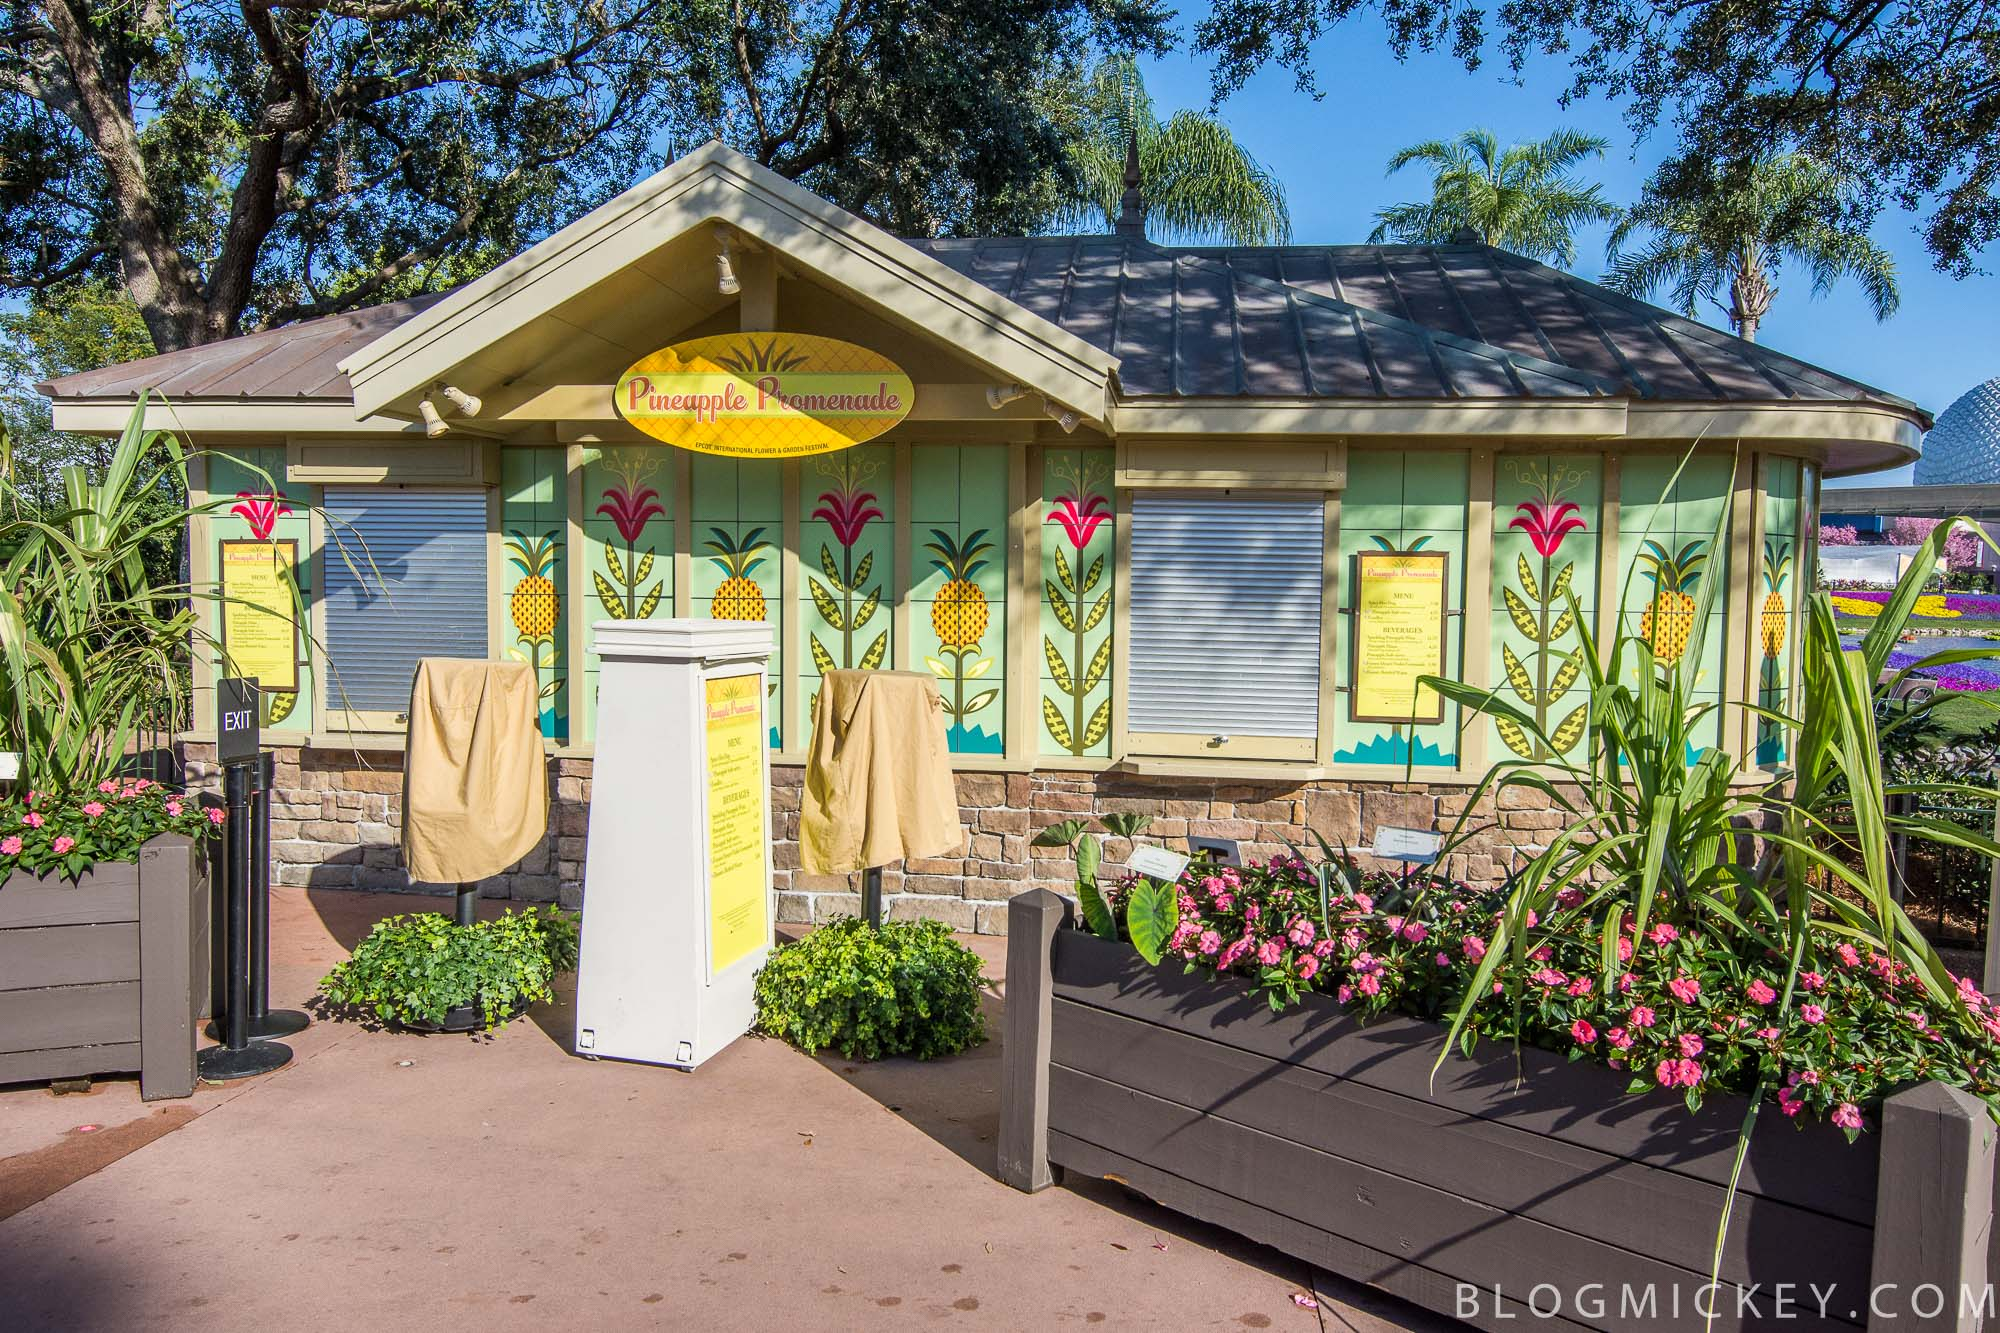 2017 Epcot Flower and Garden Festival Outdoor Kitchens menus and